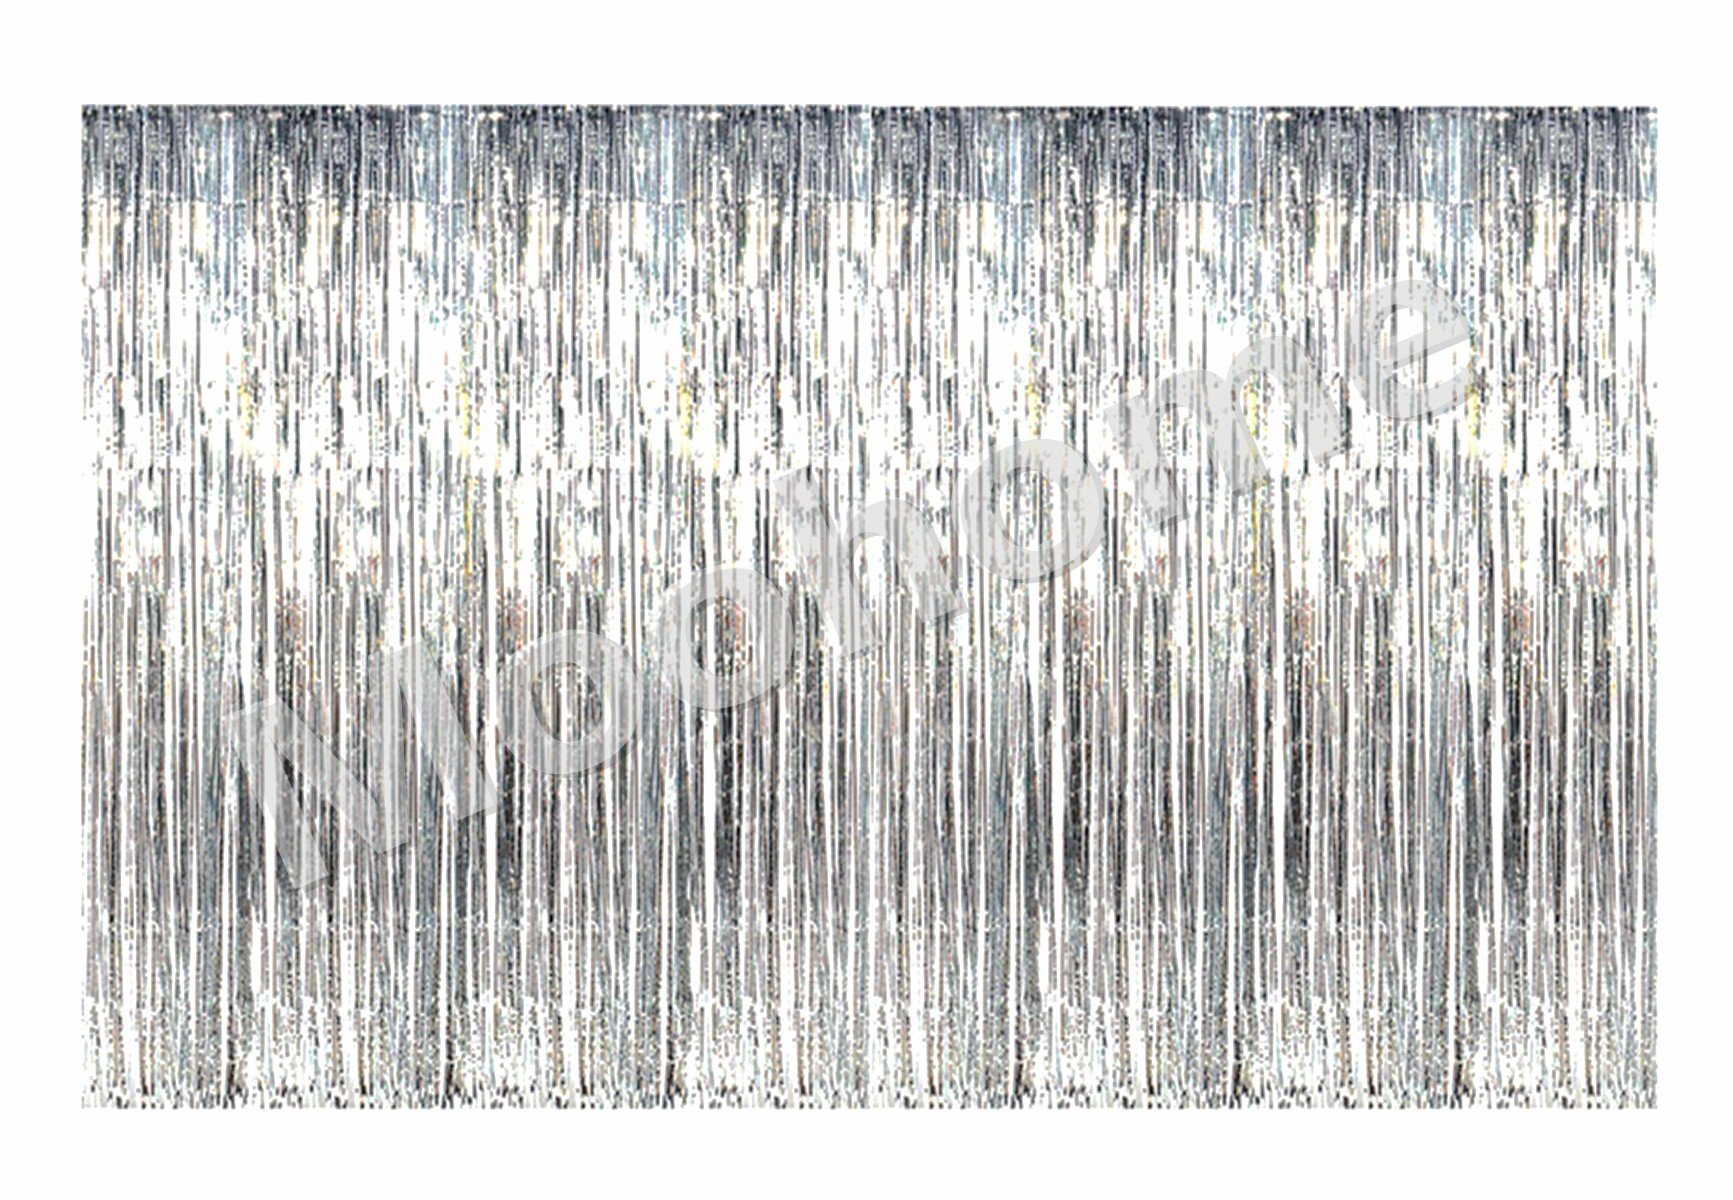 Moohome Big 12ft x 8ft Tinsel Silver Foil Fringe Curtains Backdrop Door Window Curtain Party Photography Decoration (12' x 8', Silver)